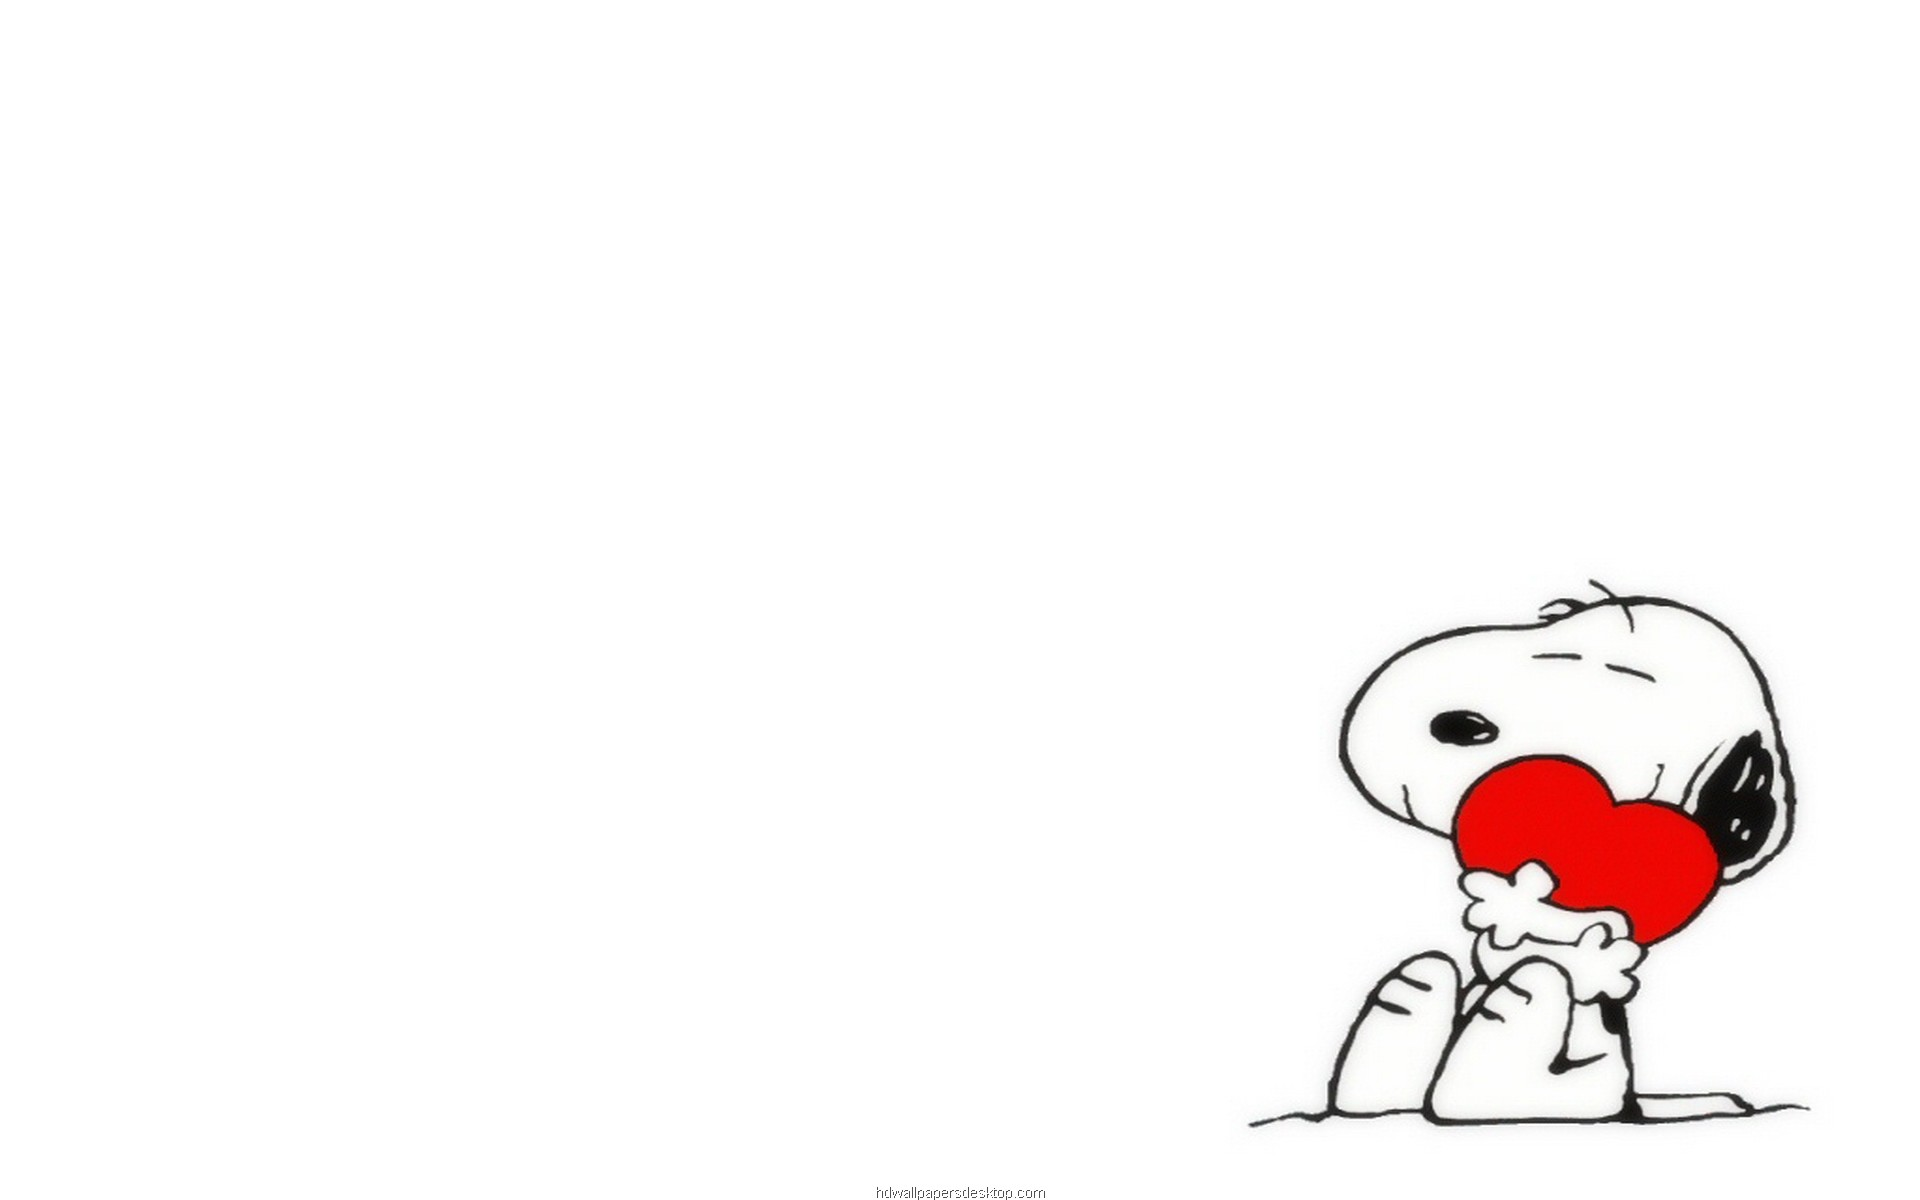 Download image Free Snoopy Spring Desktop Wallpaper PC, Android .